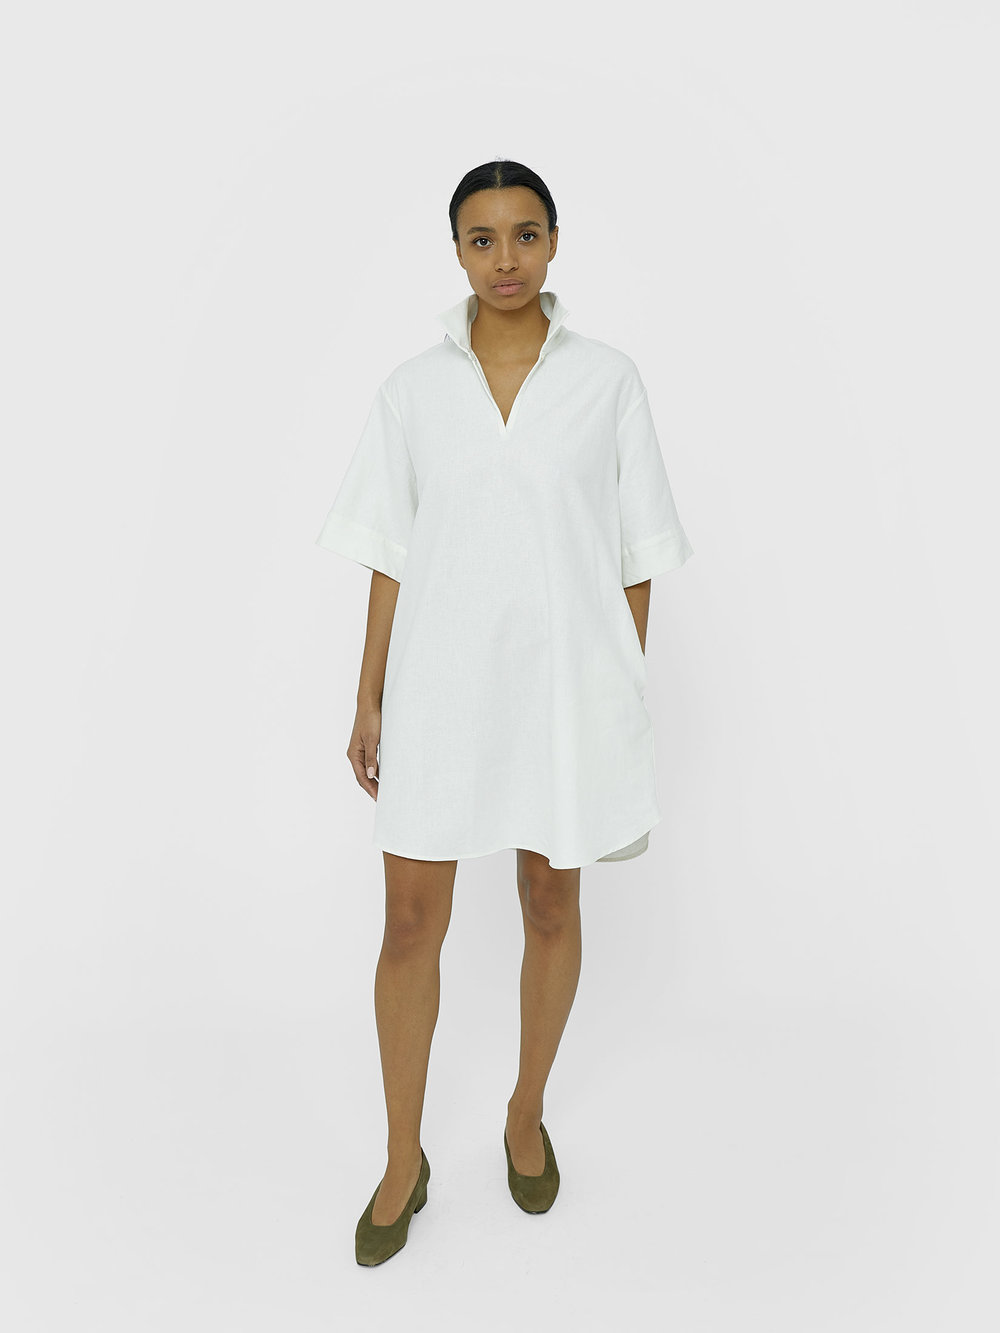 tunic-unisex-white-kirsten-one-dna-01.jpg